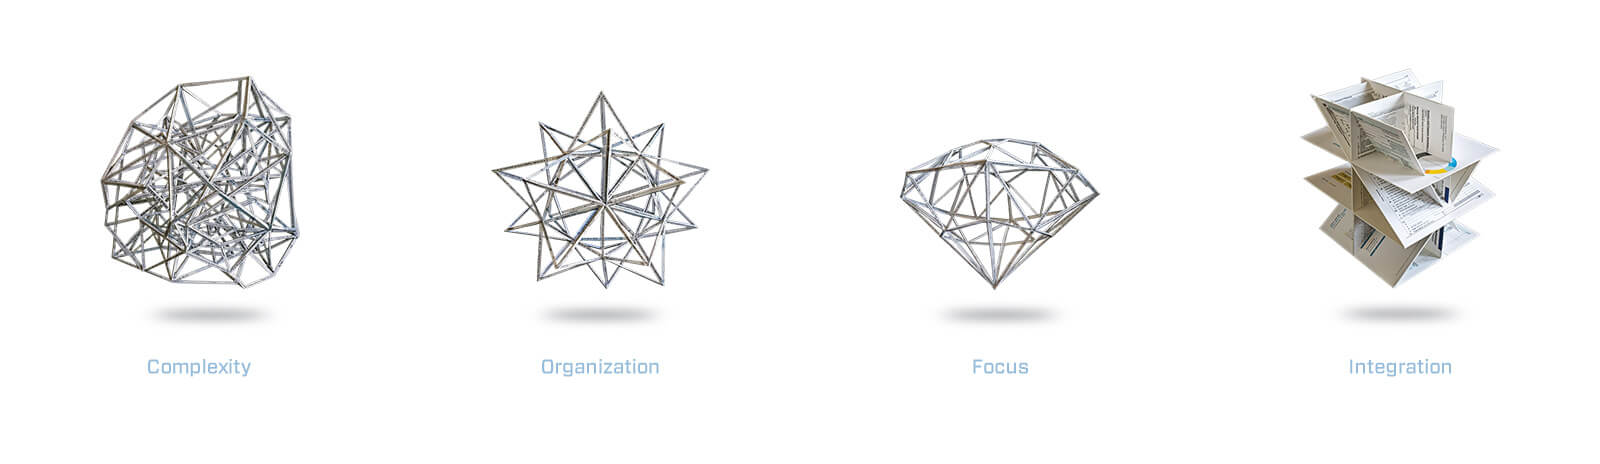 Certainty-orgnization-focus-Integration case study and designs